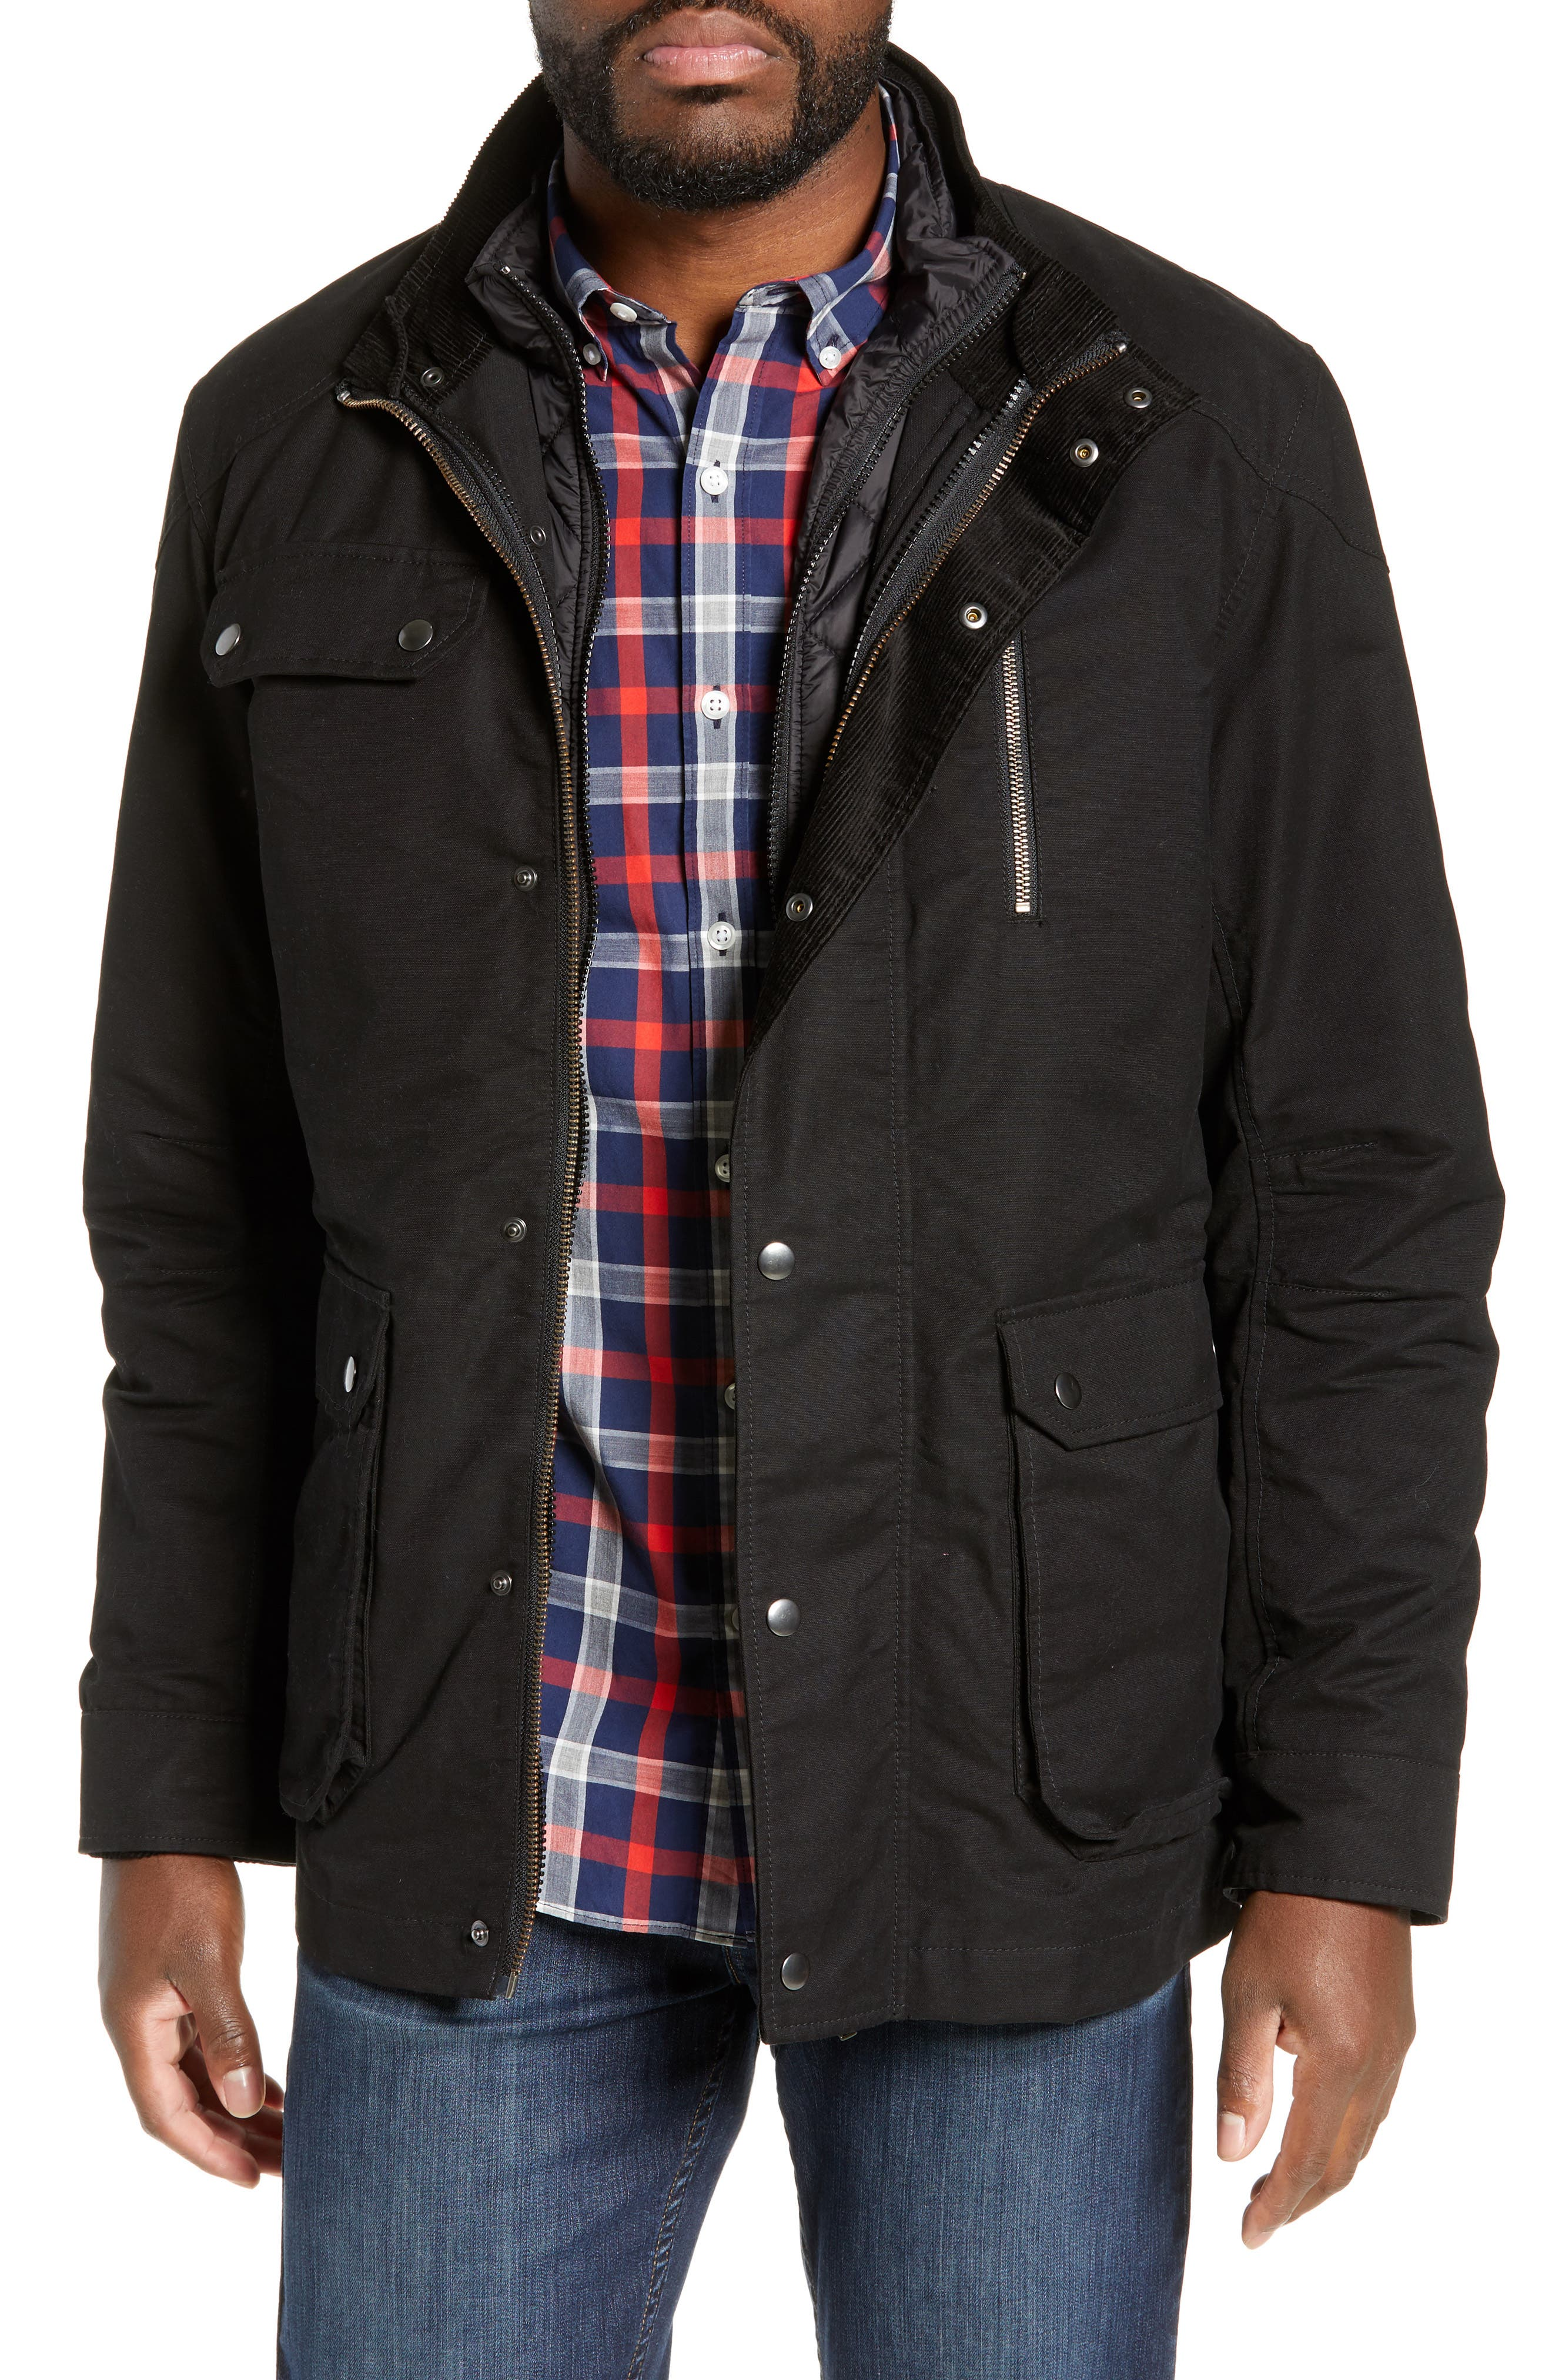 RODD & GUNN 'Harper' Water Resistant 3-in-1 Waxed Canvas Jacket, Main, color, ONYX